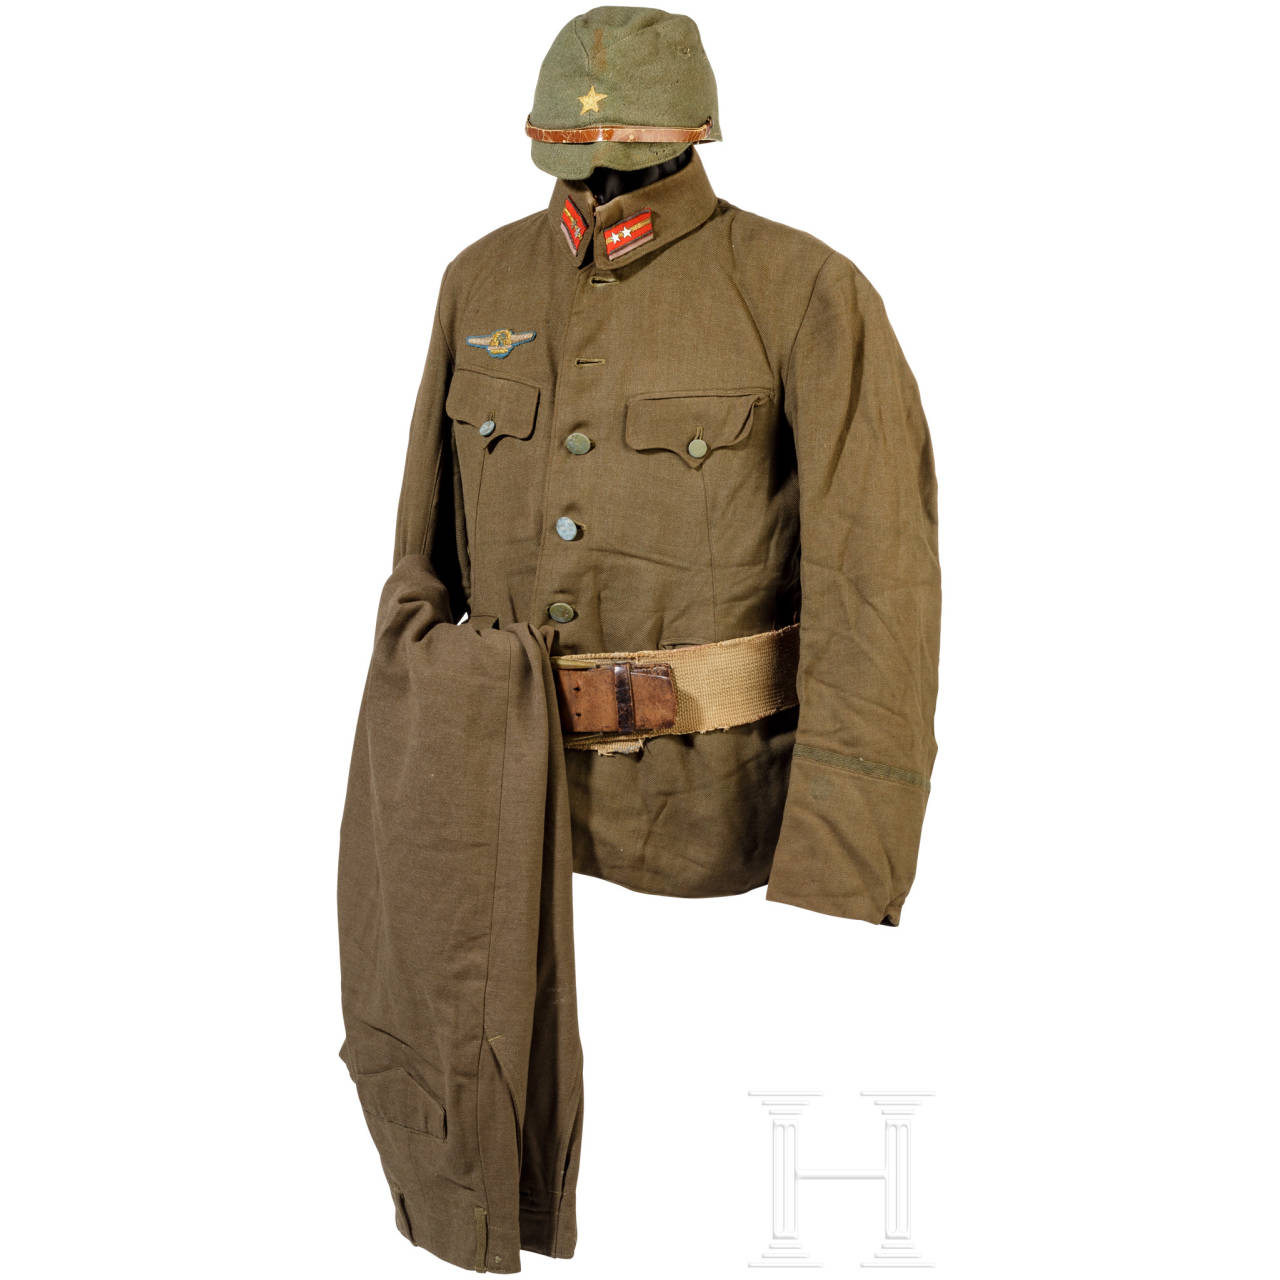 A uniform and equipment ensemble for a 1st lieutenant, World War II